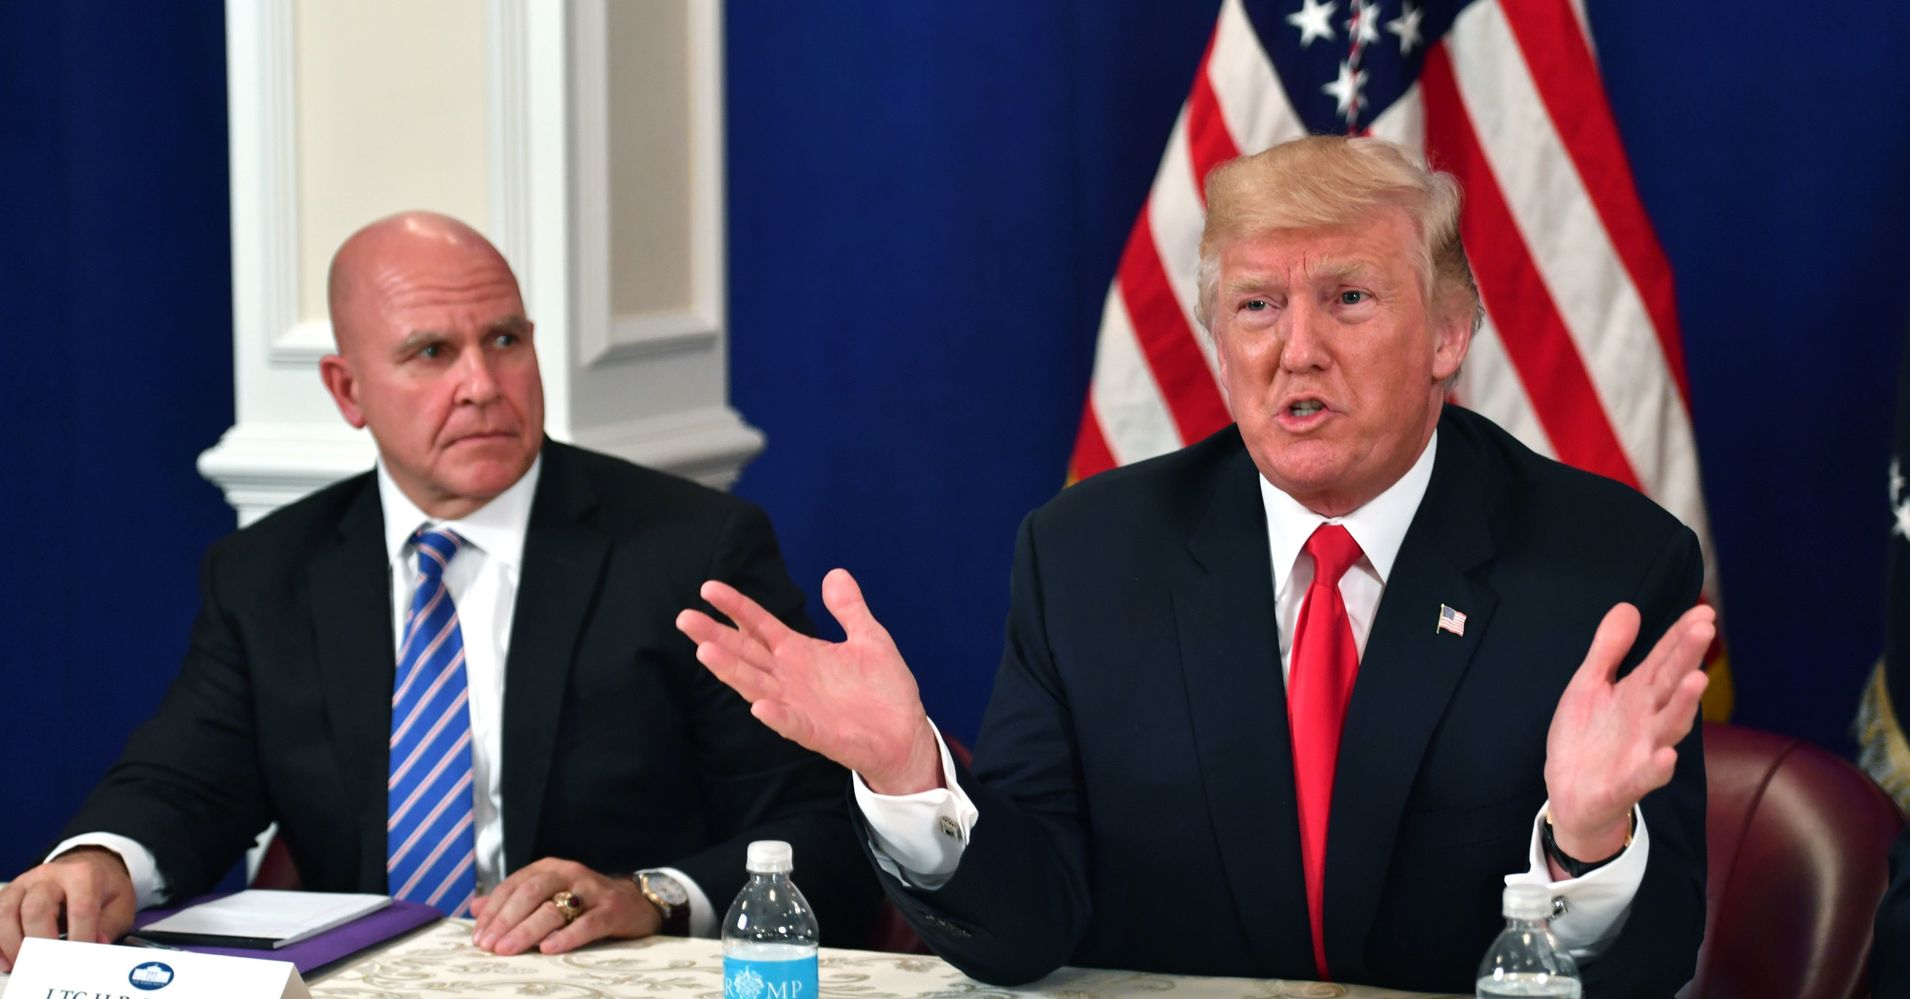 H.R. McMaster Showed Trump Photo Of Afghan Women In Miniskirts To Escalate War